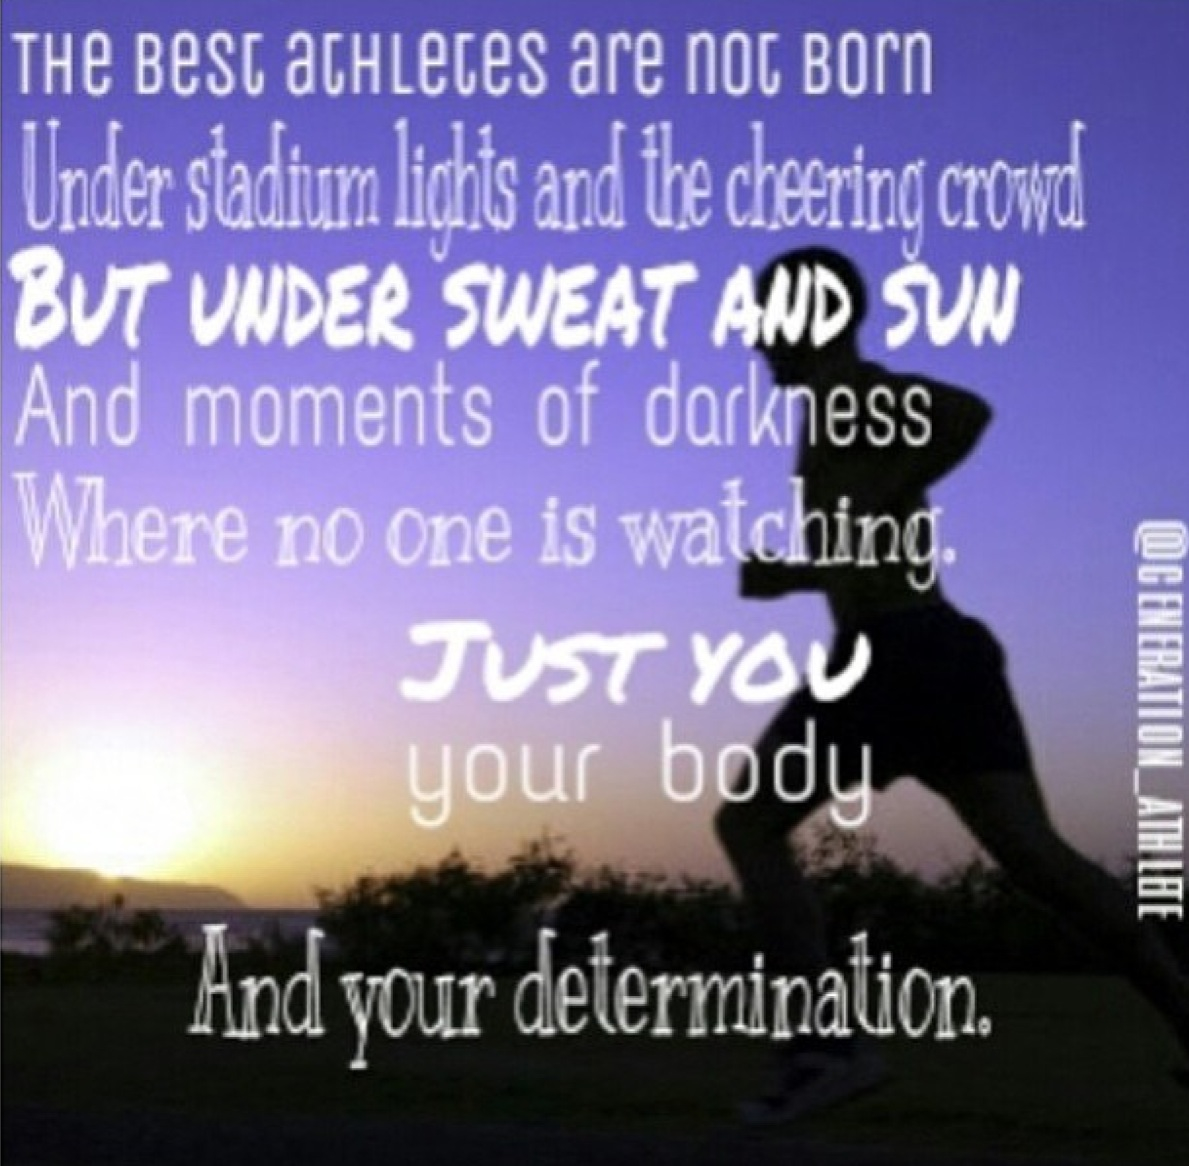 Inspirational Quotes On Pinterest: Athlete Quotes Pinterest. QuotesGram